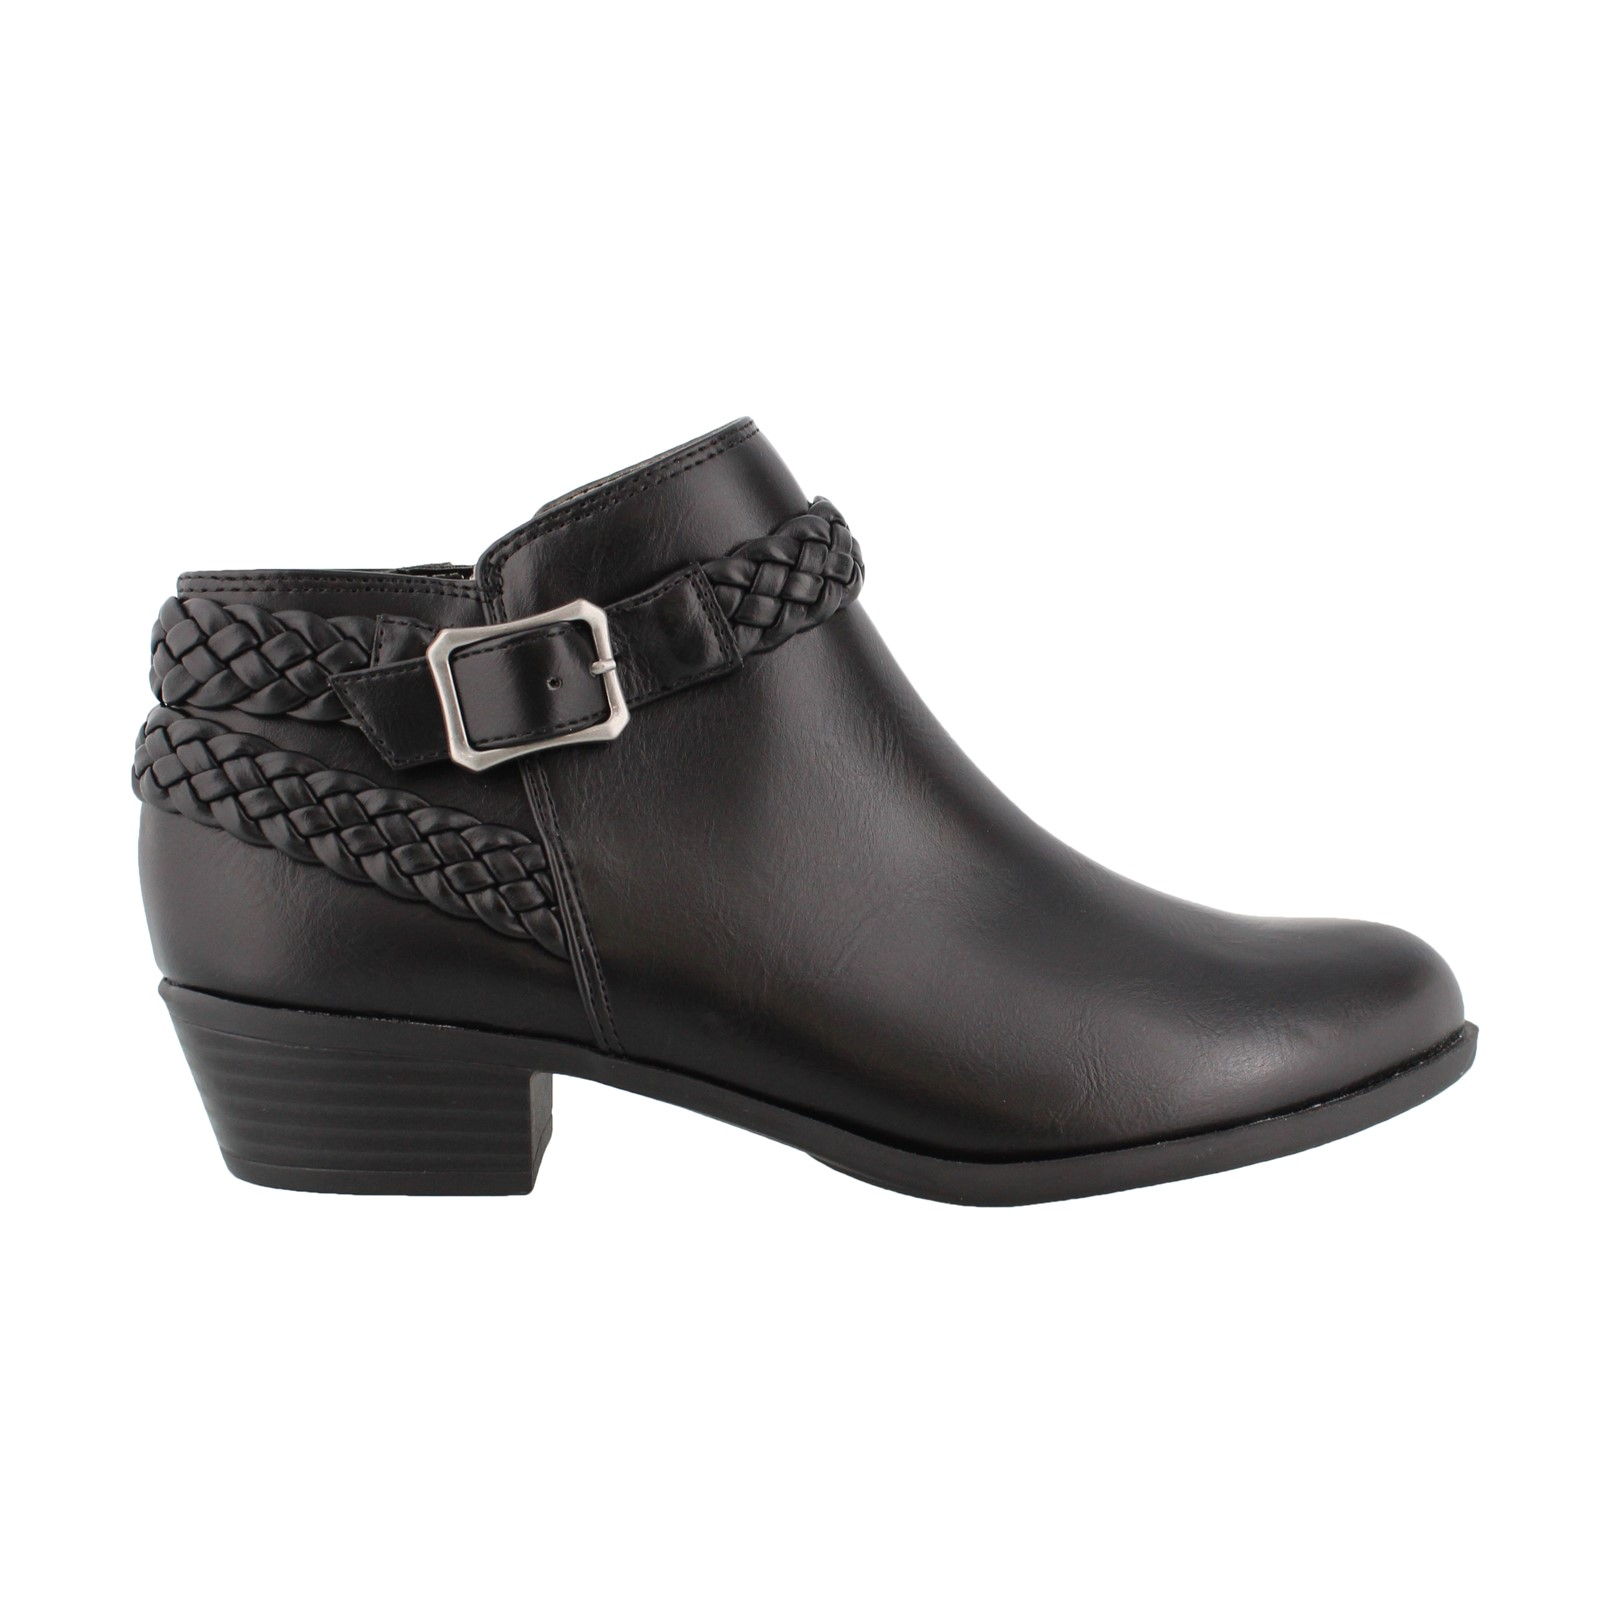 Women's Lifestride, Adriana Ankle Boots